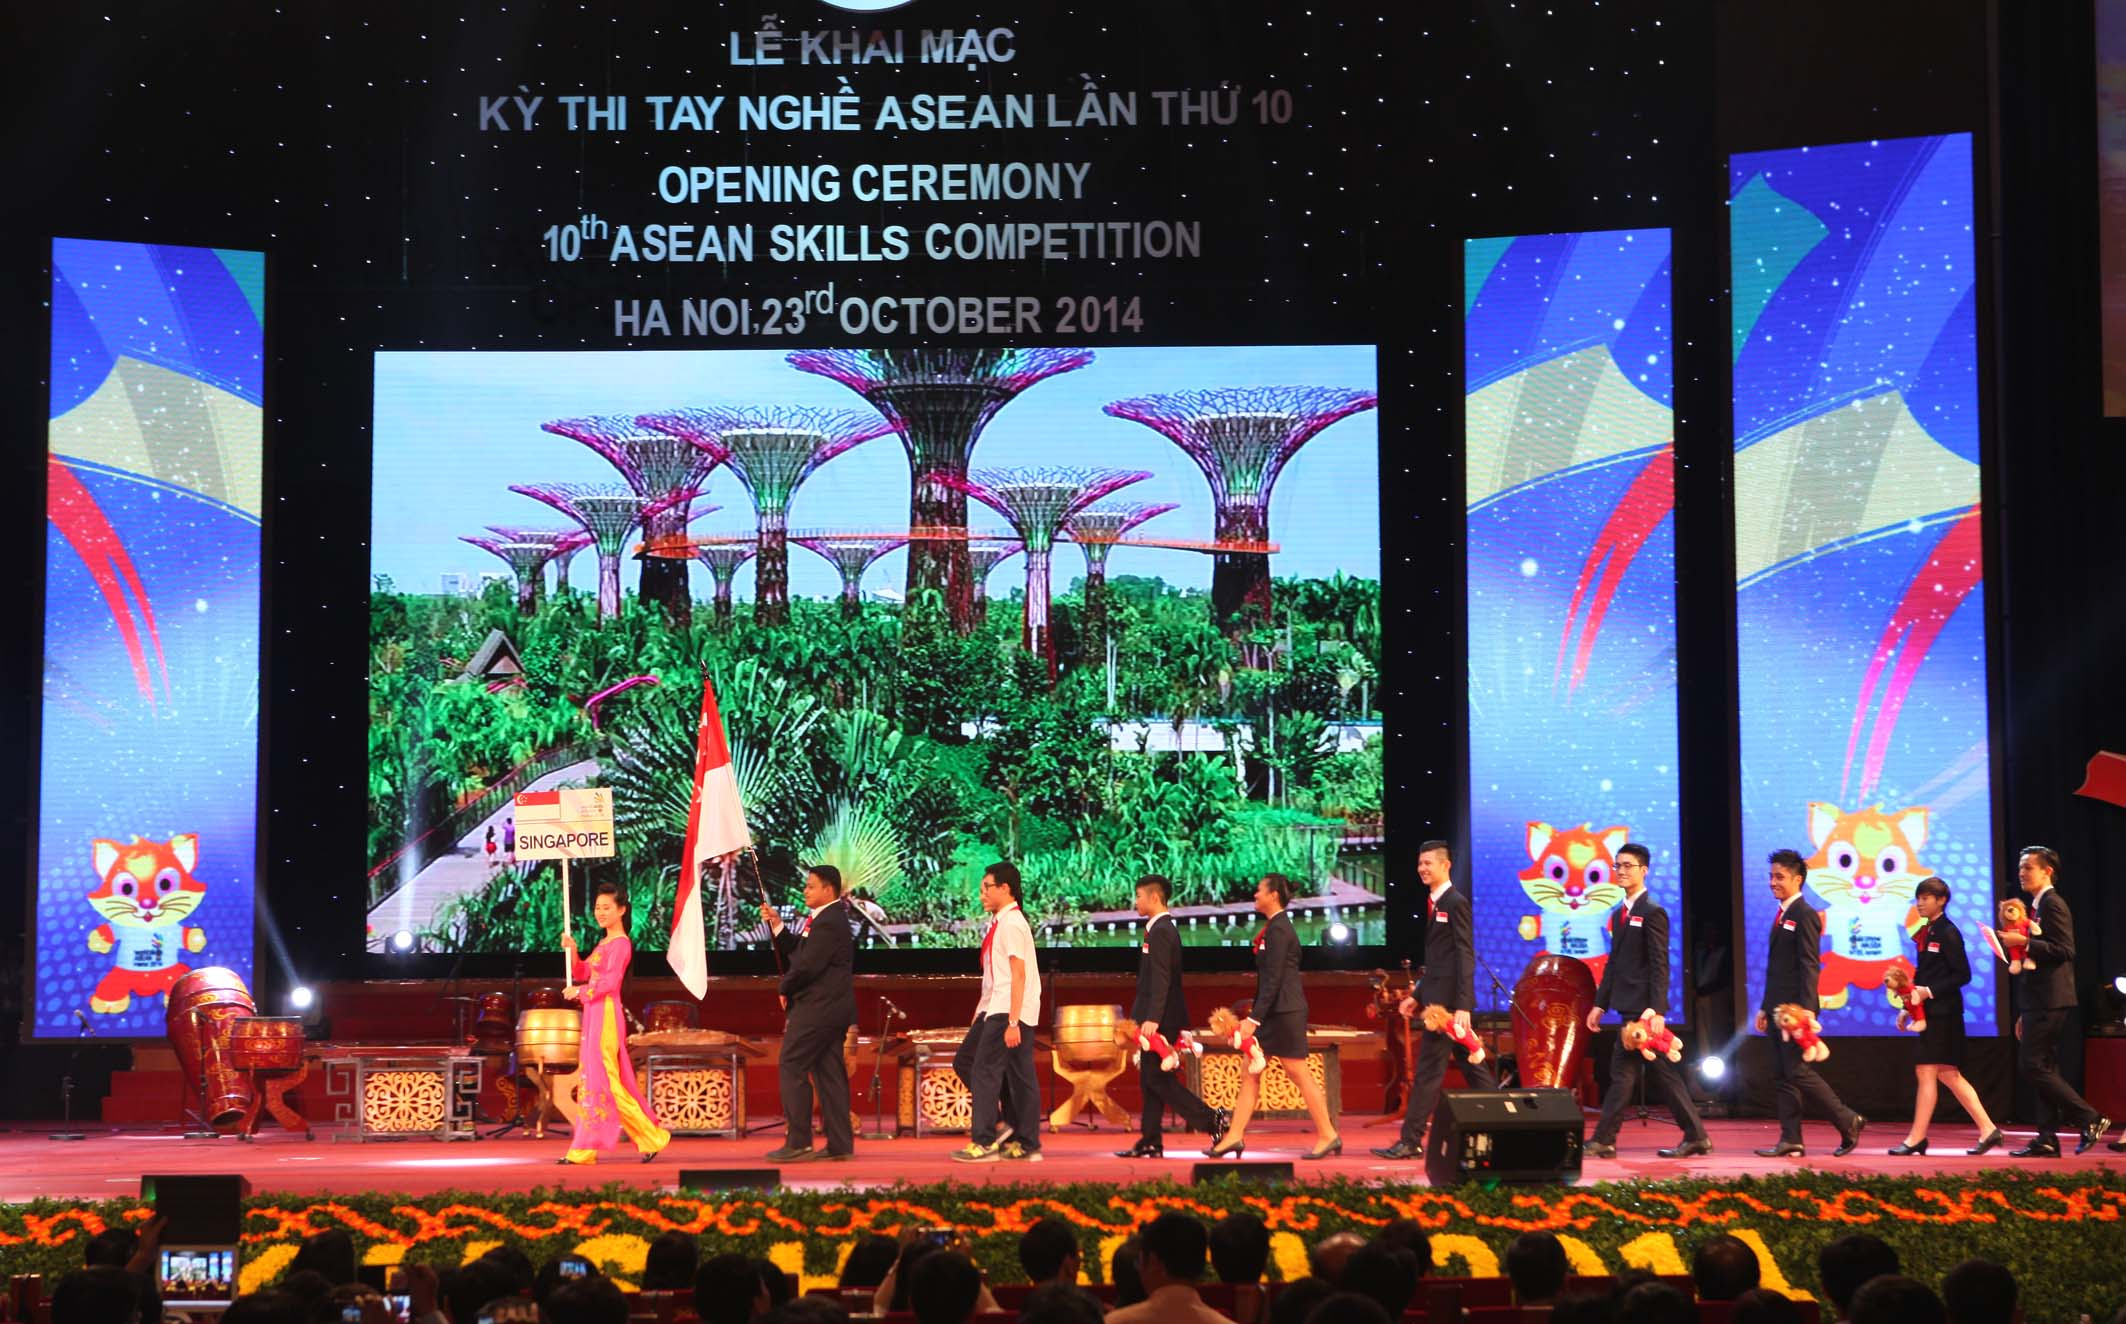 Singapore's delegation parades into stage